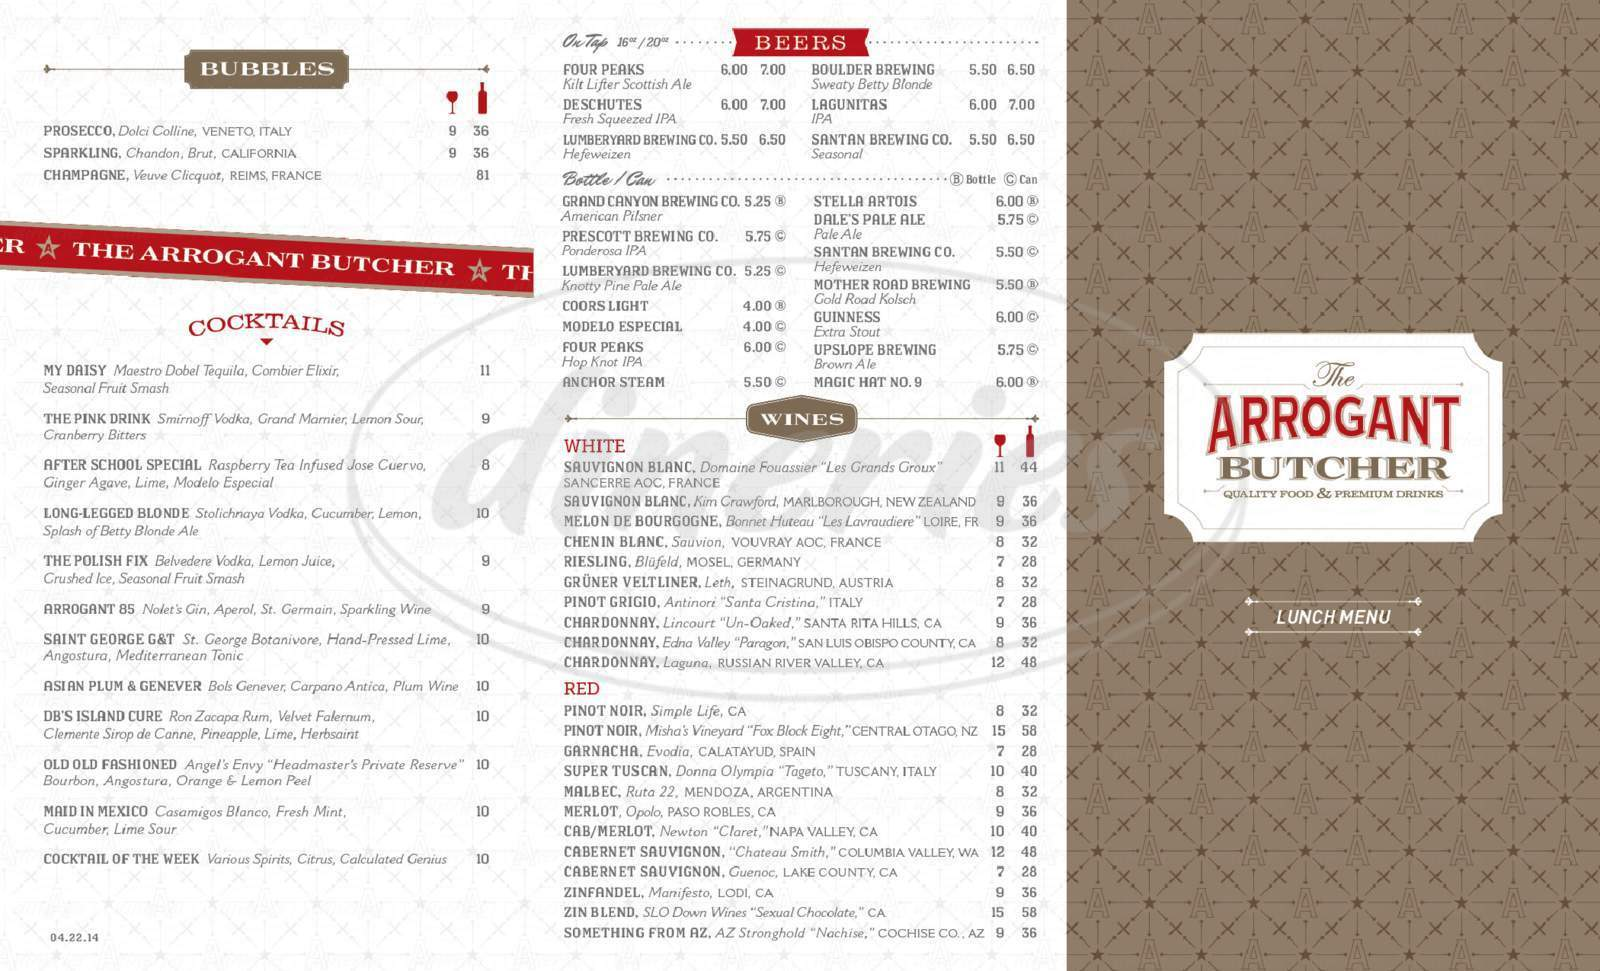 menu for The Arrogant Butcher